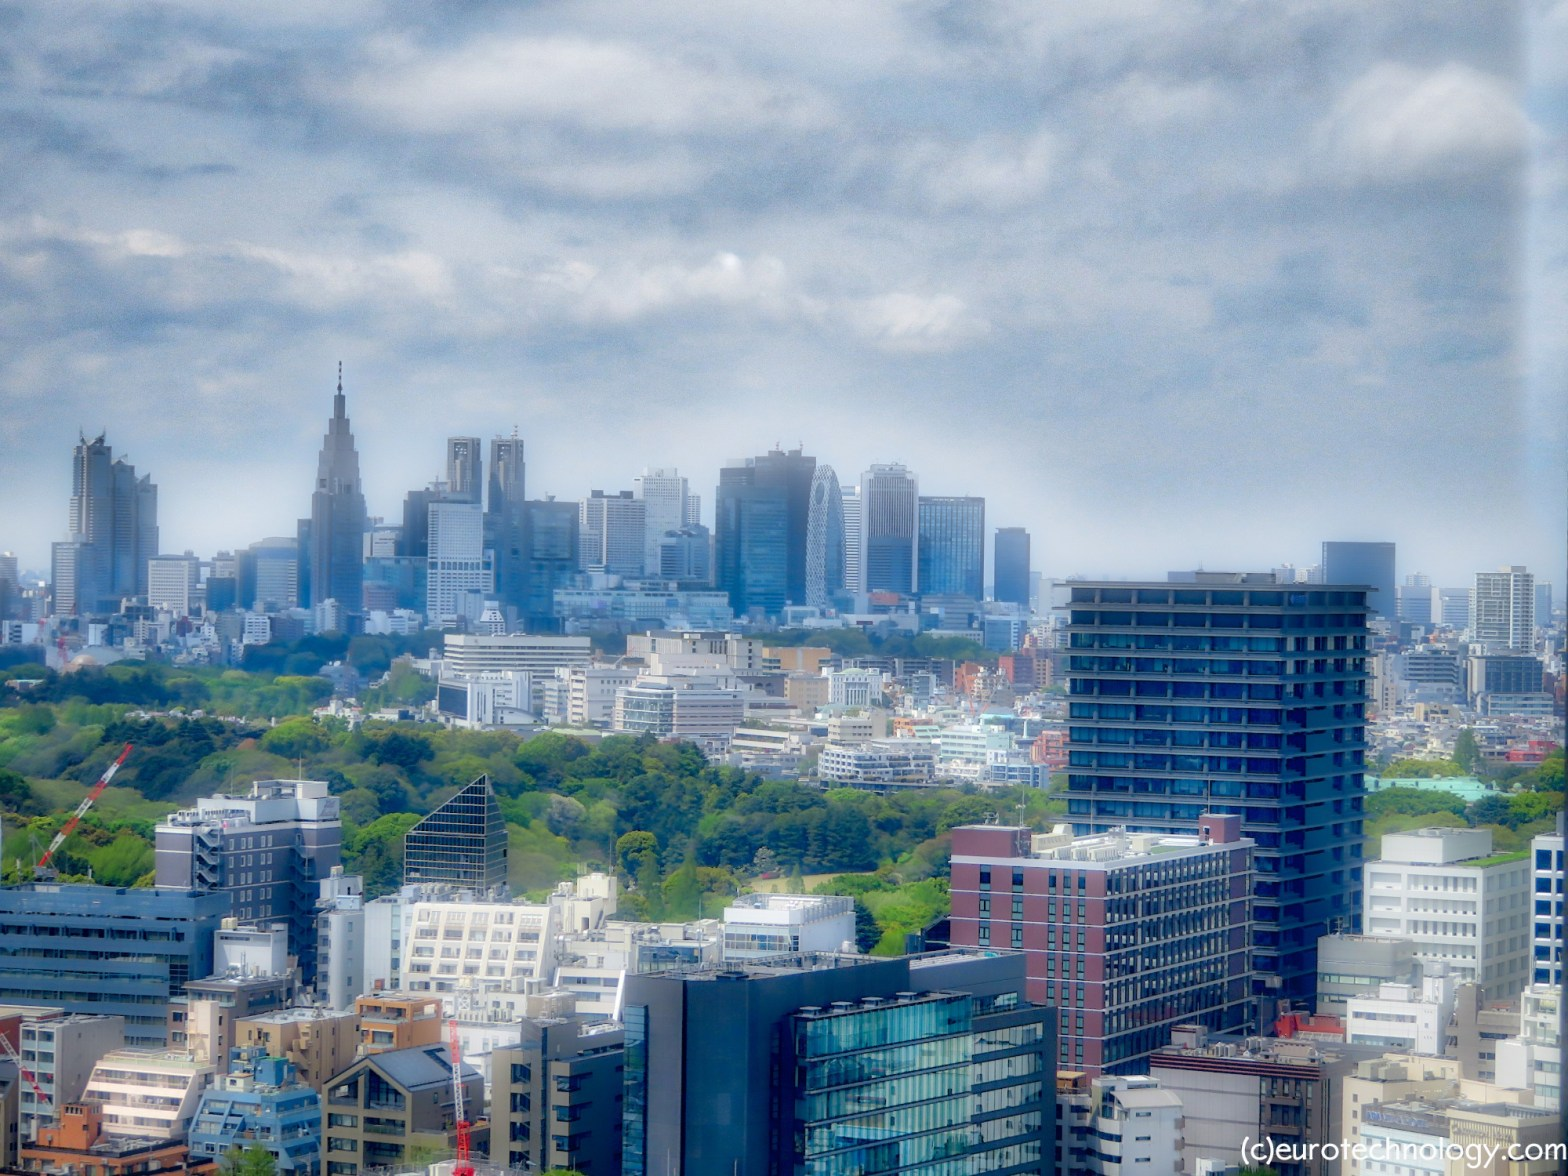 Corporate governance reforms: making Japanese corporations great again? Monday, May 28, 2018, 19:00-21:00 at CCIFJ